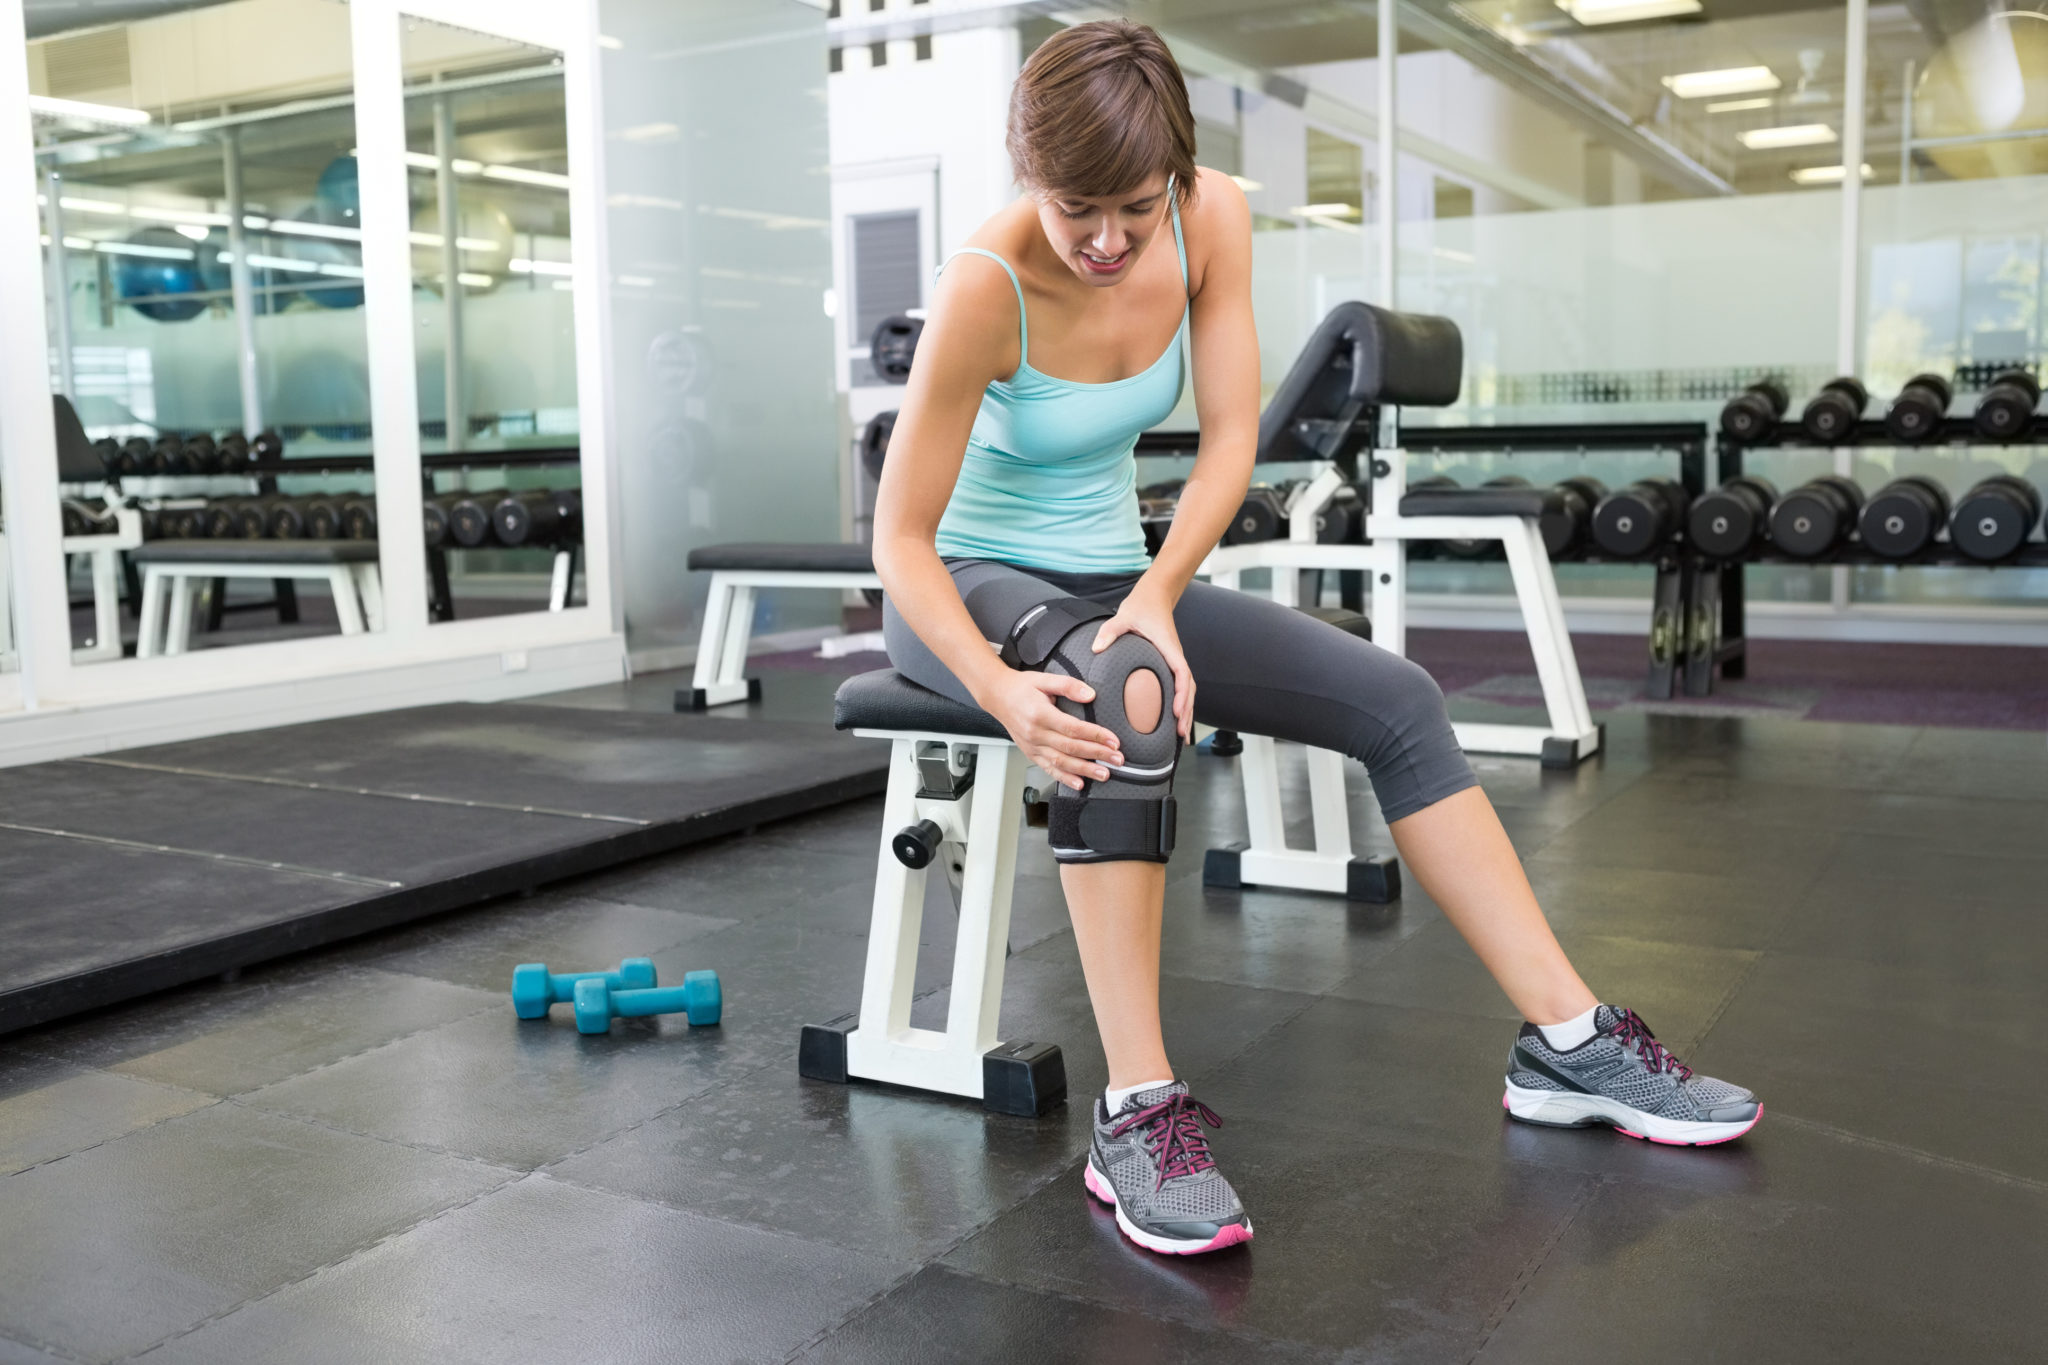 Fit brunette sitting on bench holding injured knee at the gym